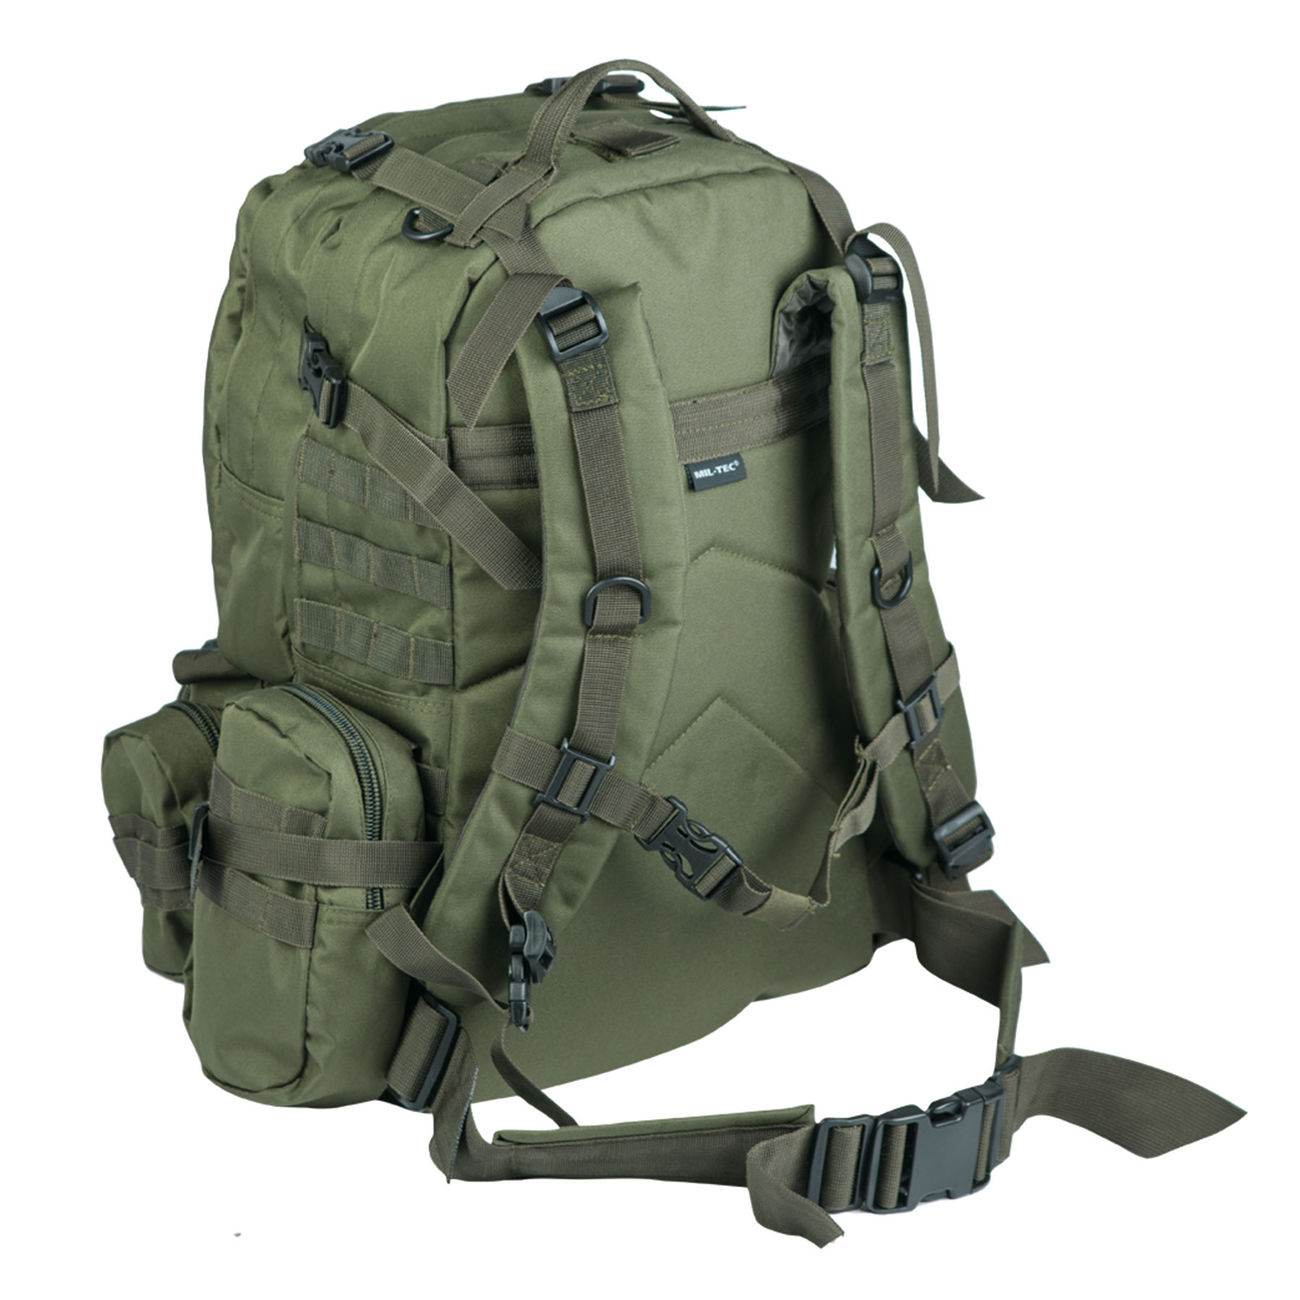 Mil-Tec Rucksack Defense Pack Assembly 36 ltr. olive 1